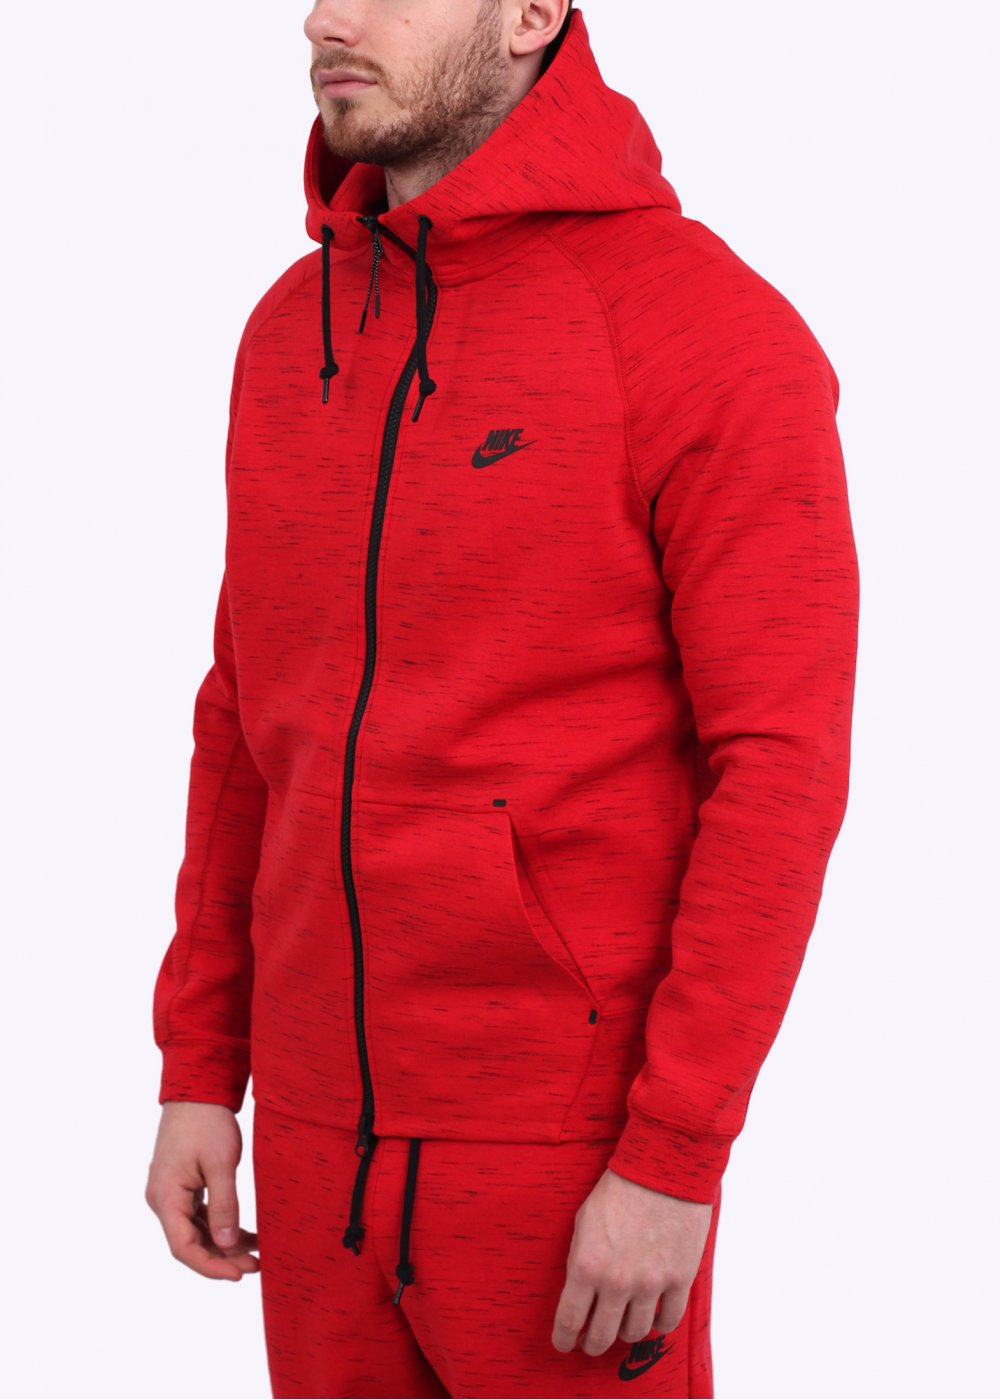 Nike AW77 Tech Fleece Hoodie Red